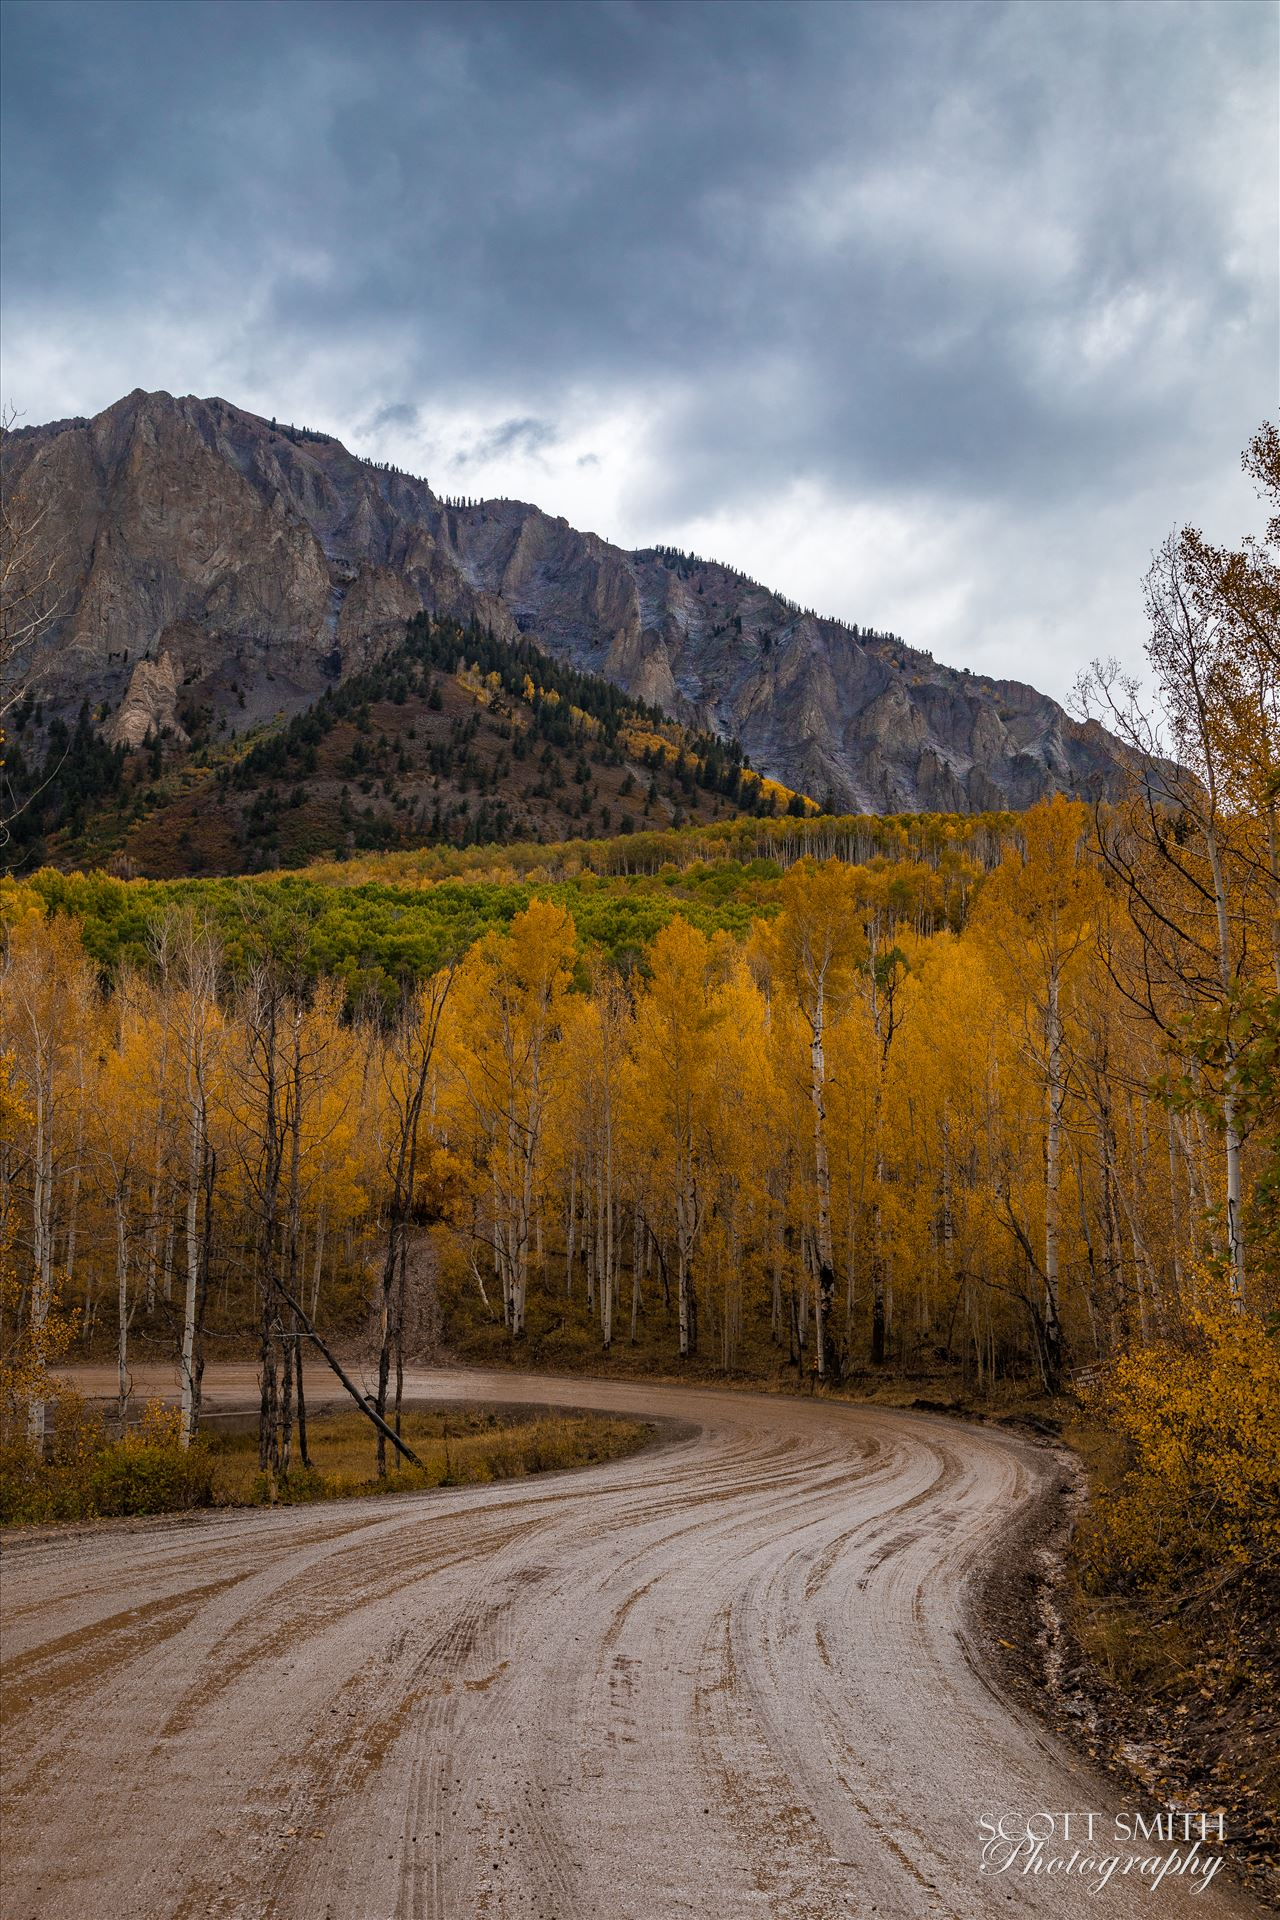 Marcellina Mountain 1 - Marcellina Mountain from Kebler Pass, on the way to Creste Butte, Saturday 9/29/17. by D Scott Smith